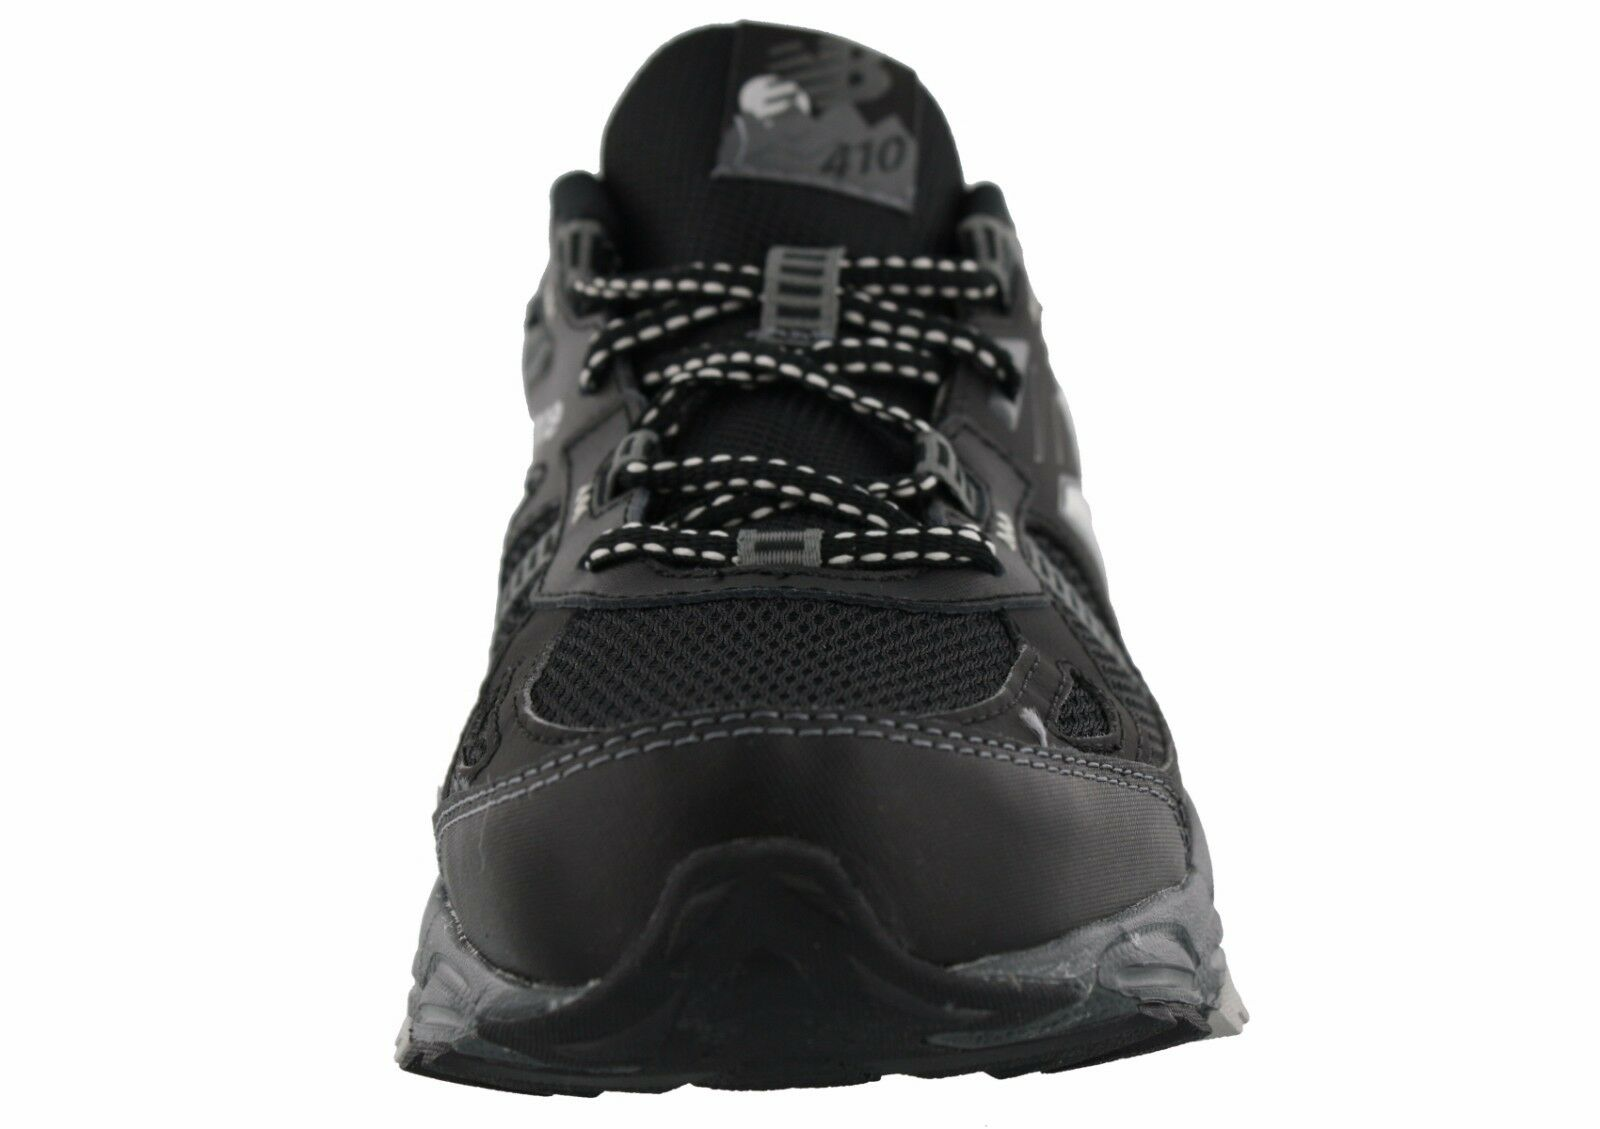 48a67687146 ... Men s Basketball Basketball Basketball Shoe Sport Shoes Outdoor  Performance Fashion Athletic Sneakers 0018a1 ...